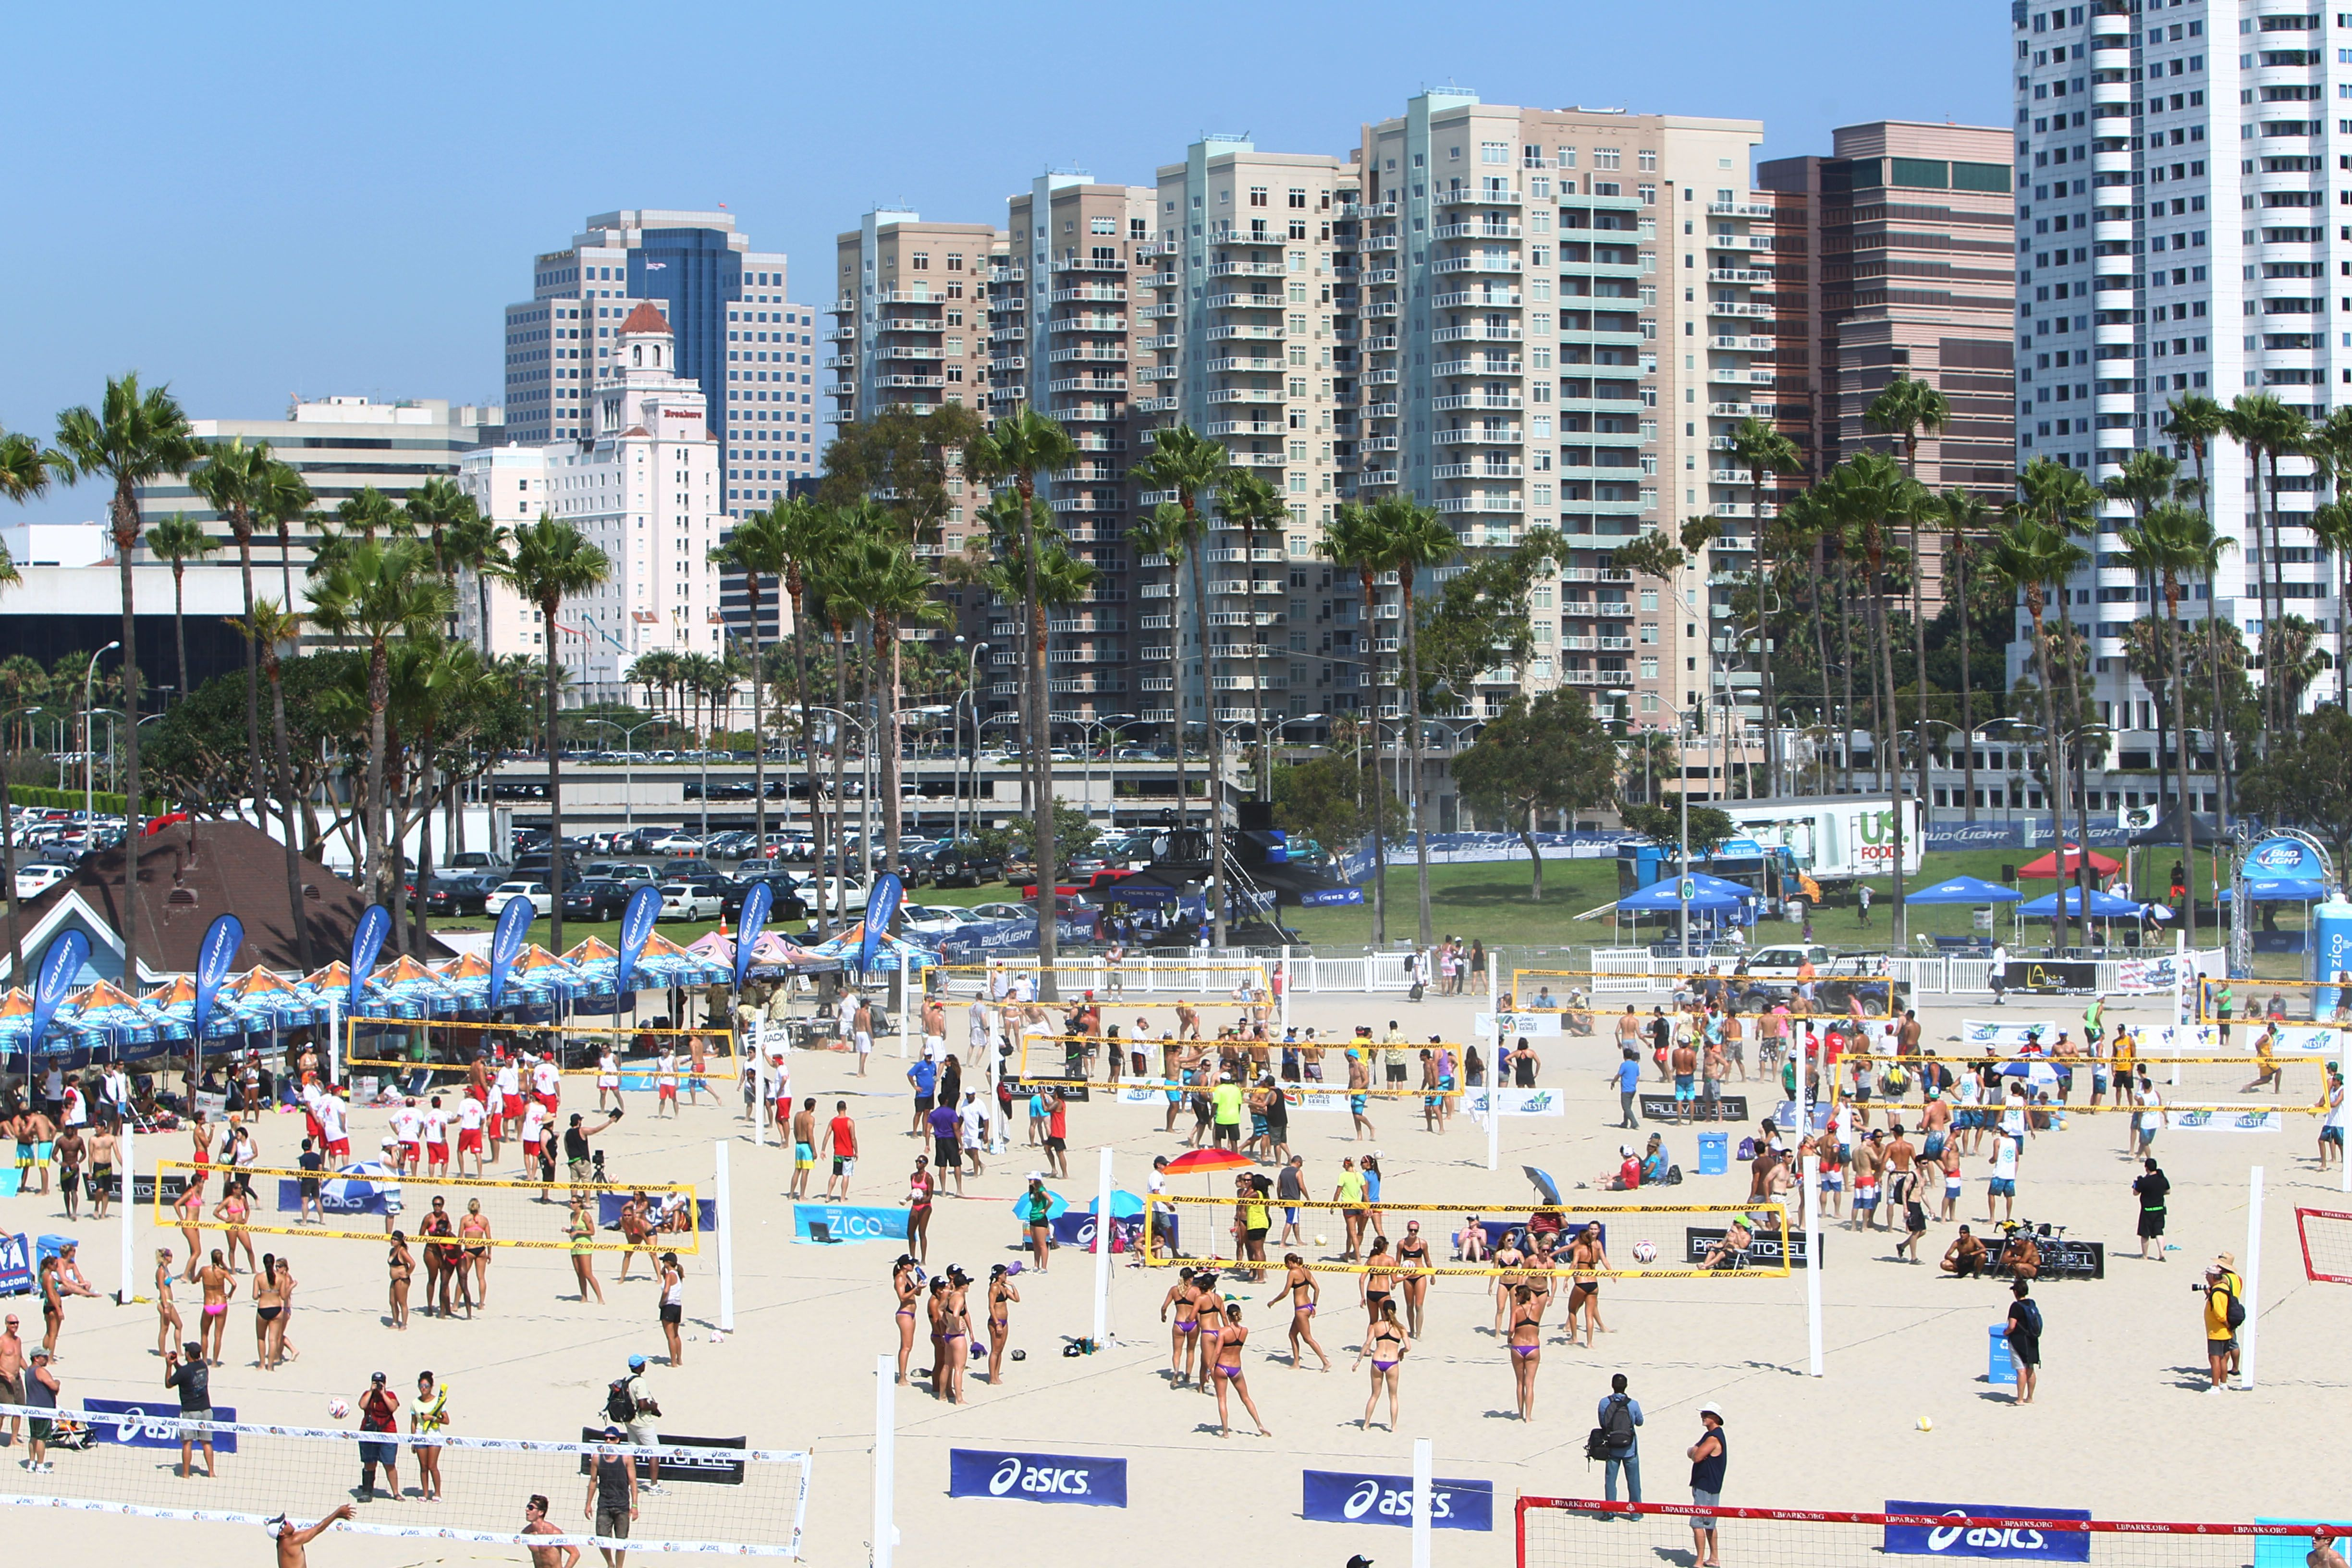 Volleyball Tournament On The Beach Walkable City